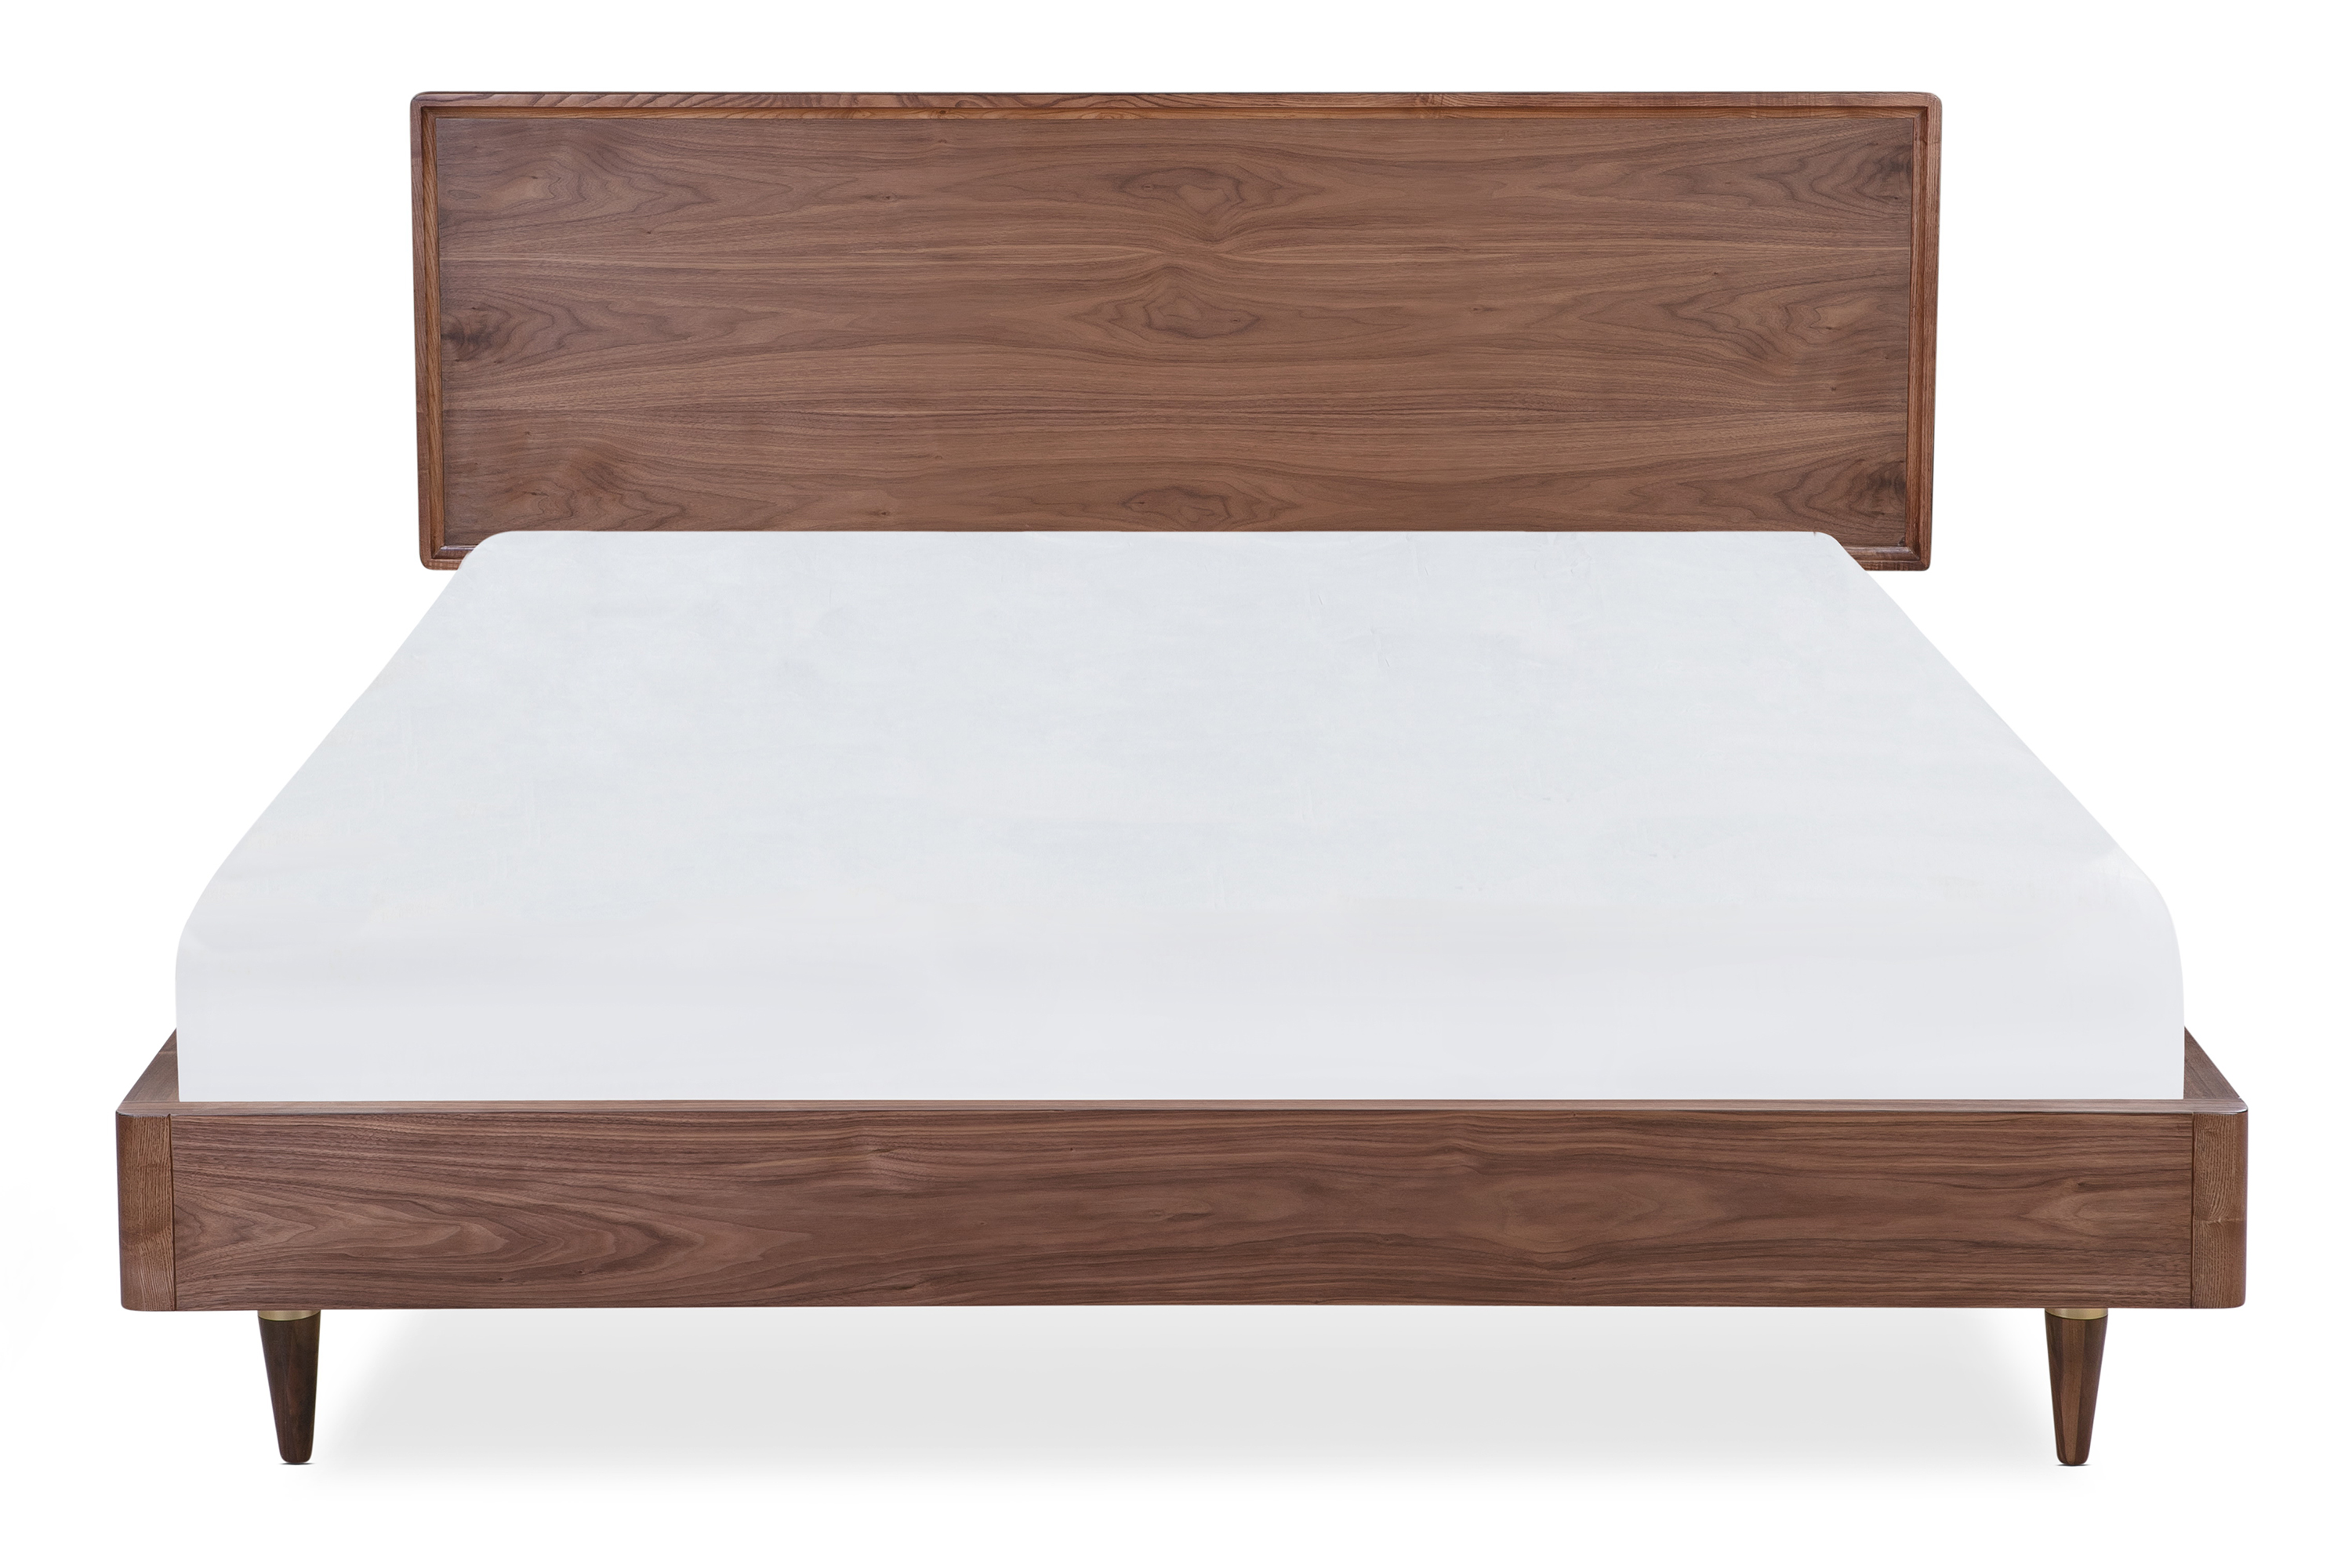 Dream Bed Queen, Walnut